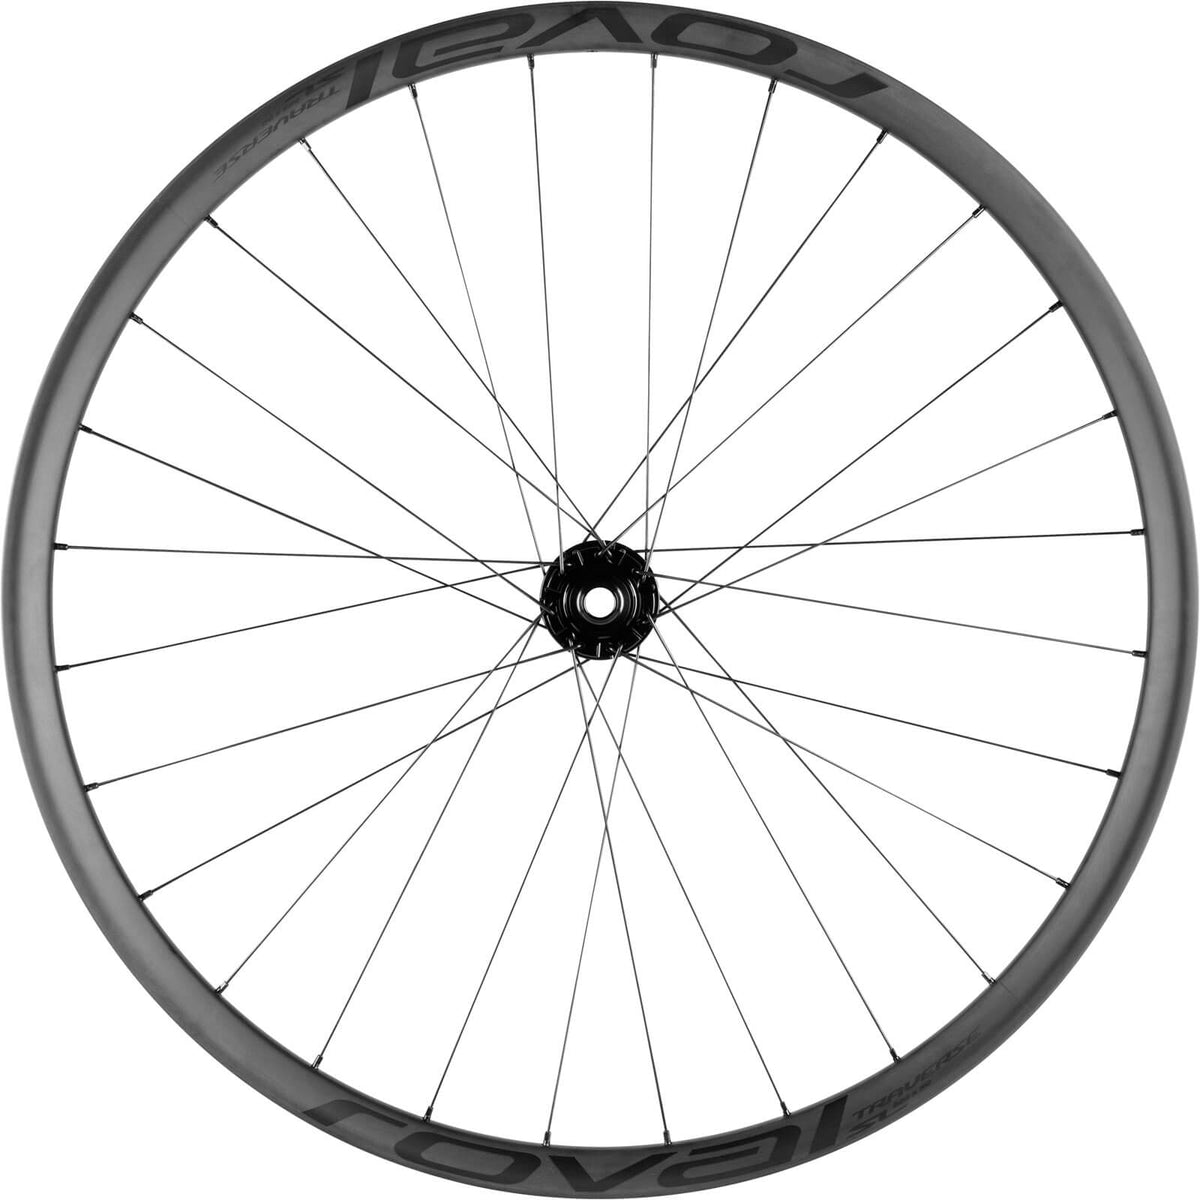 Traverse SL front wheel